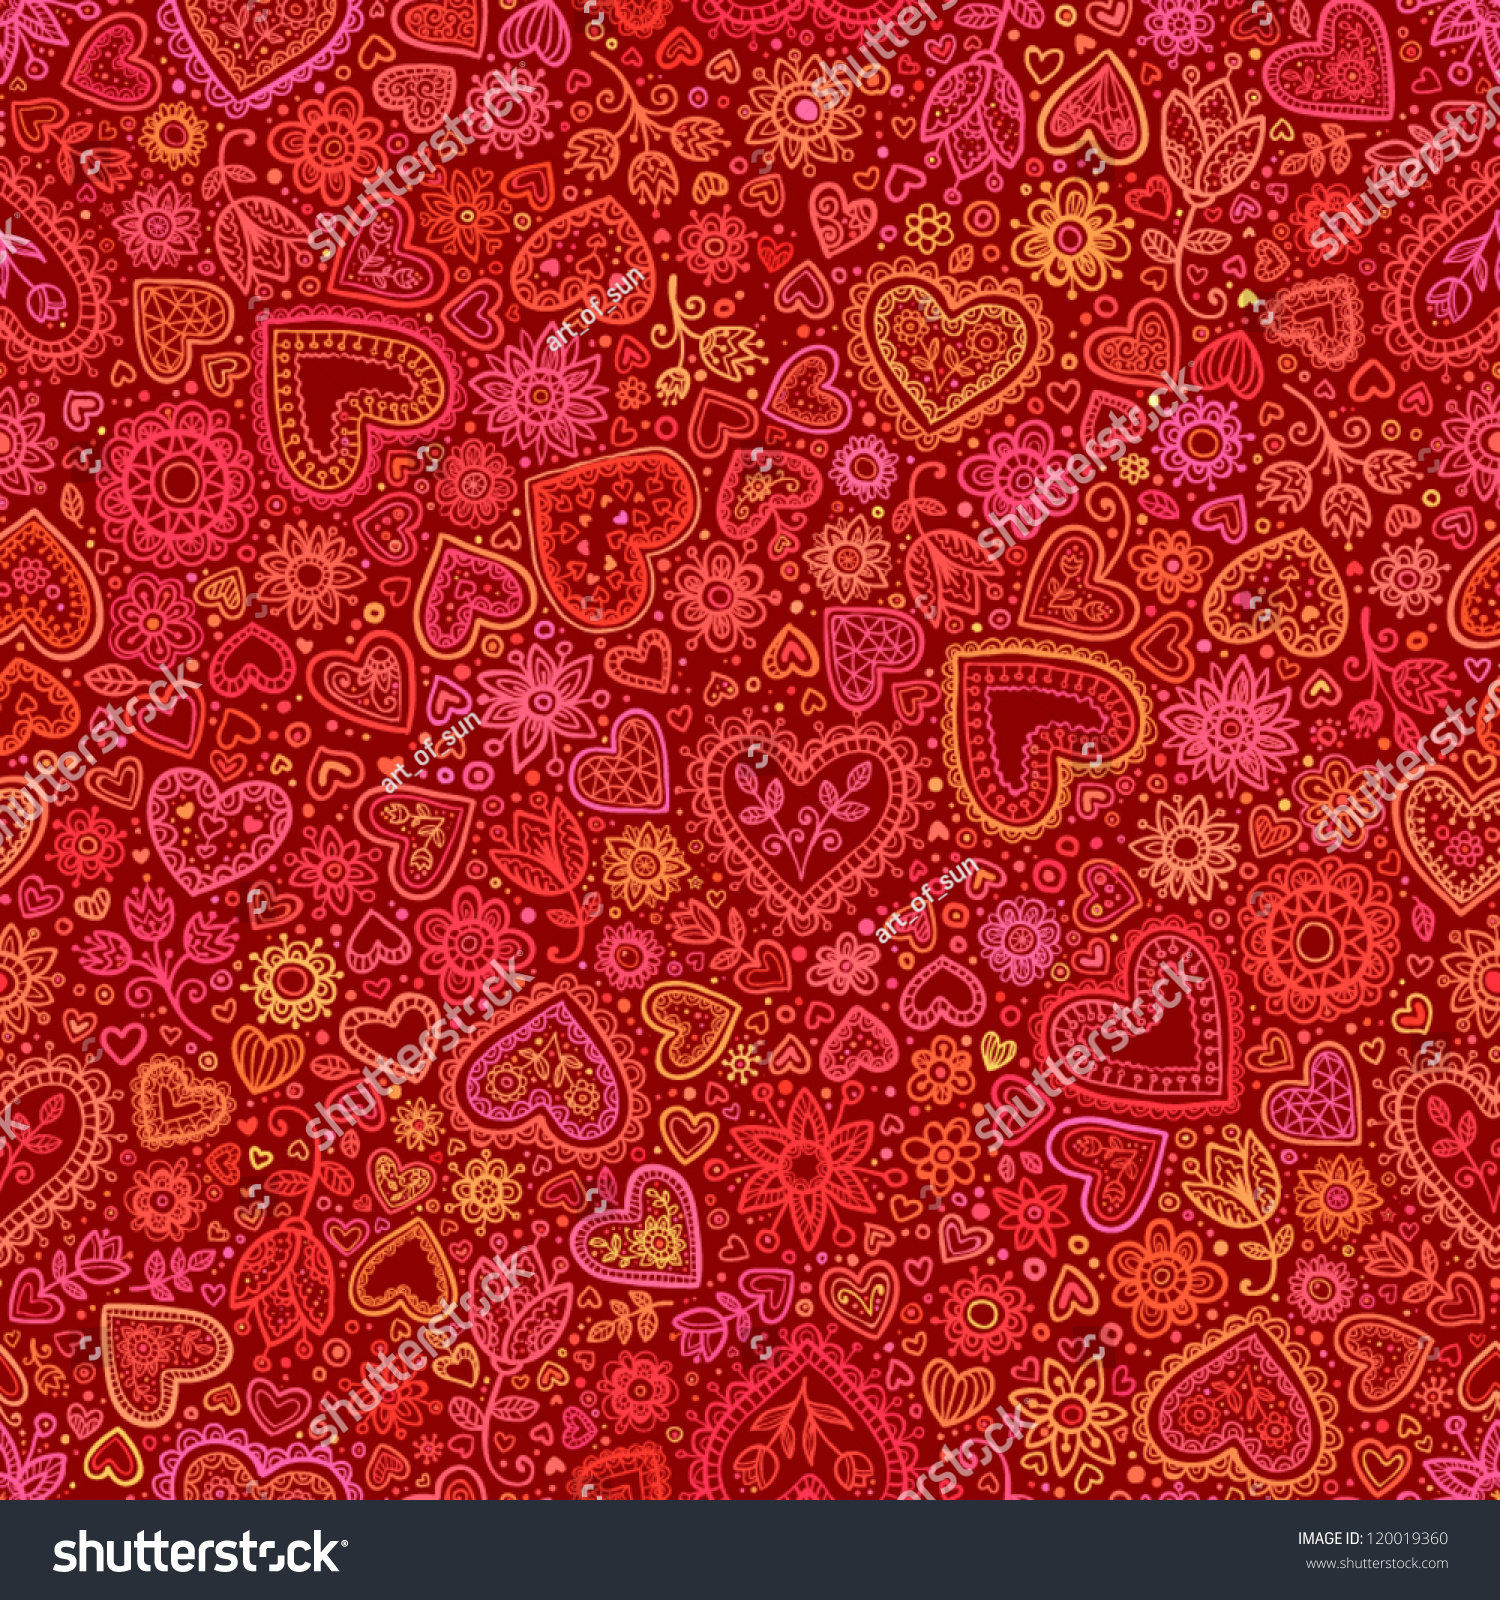 valentines day background clipart - photo #35